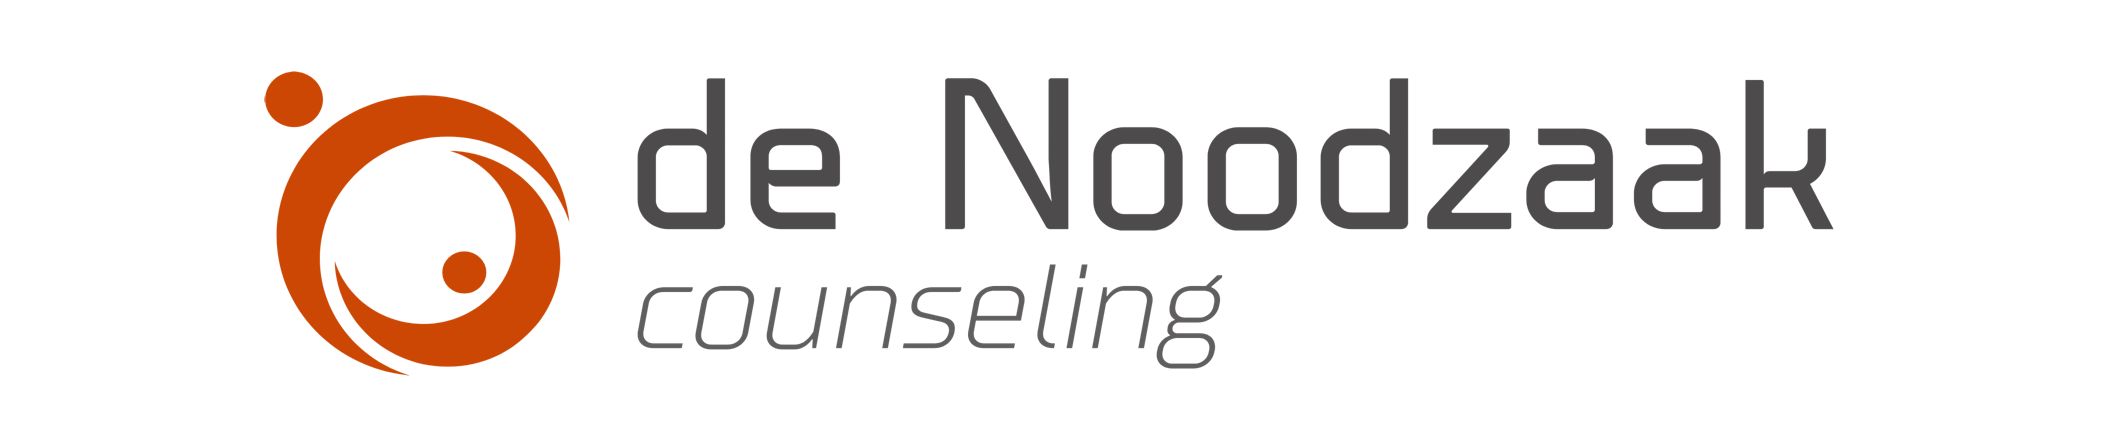 De Noodzaak counseling